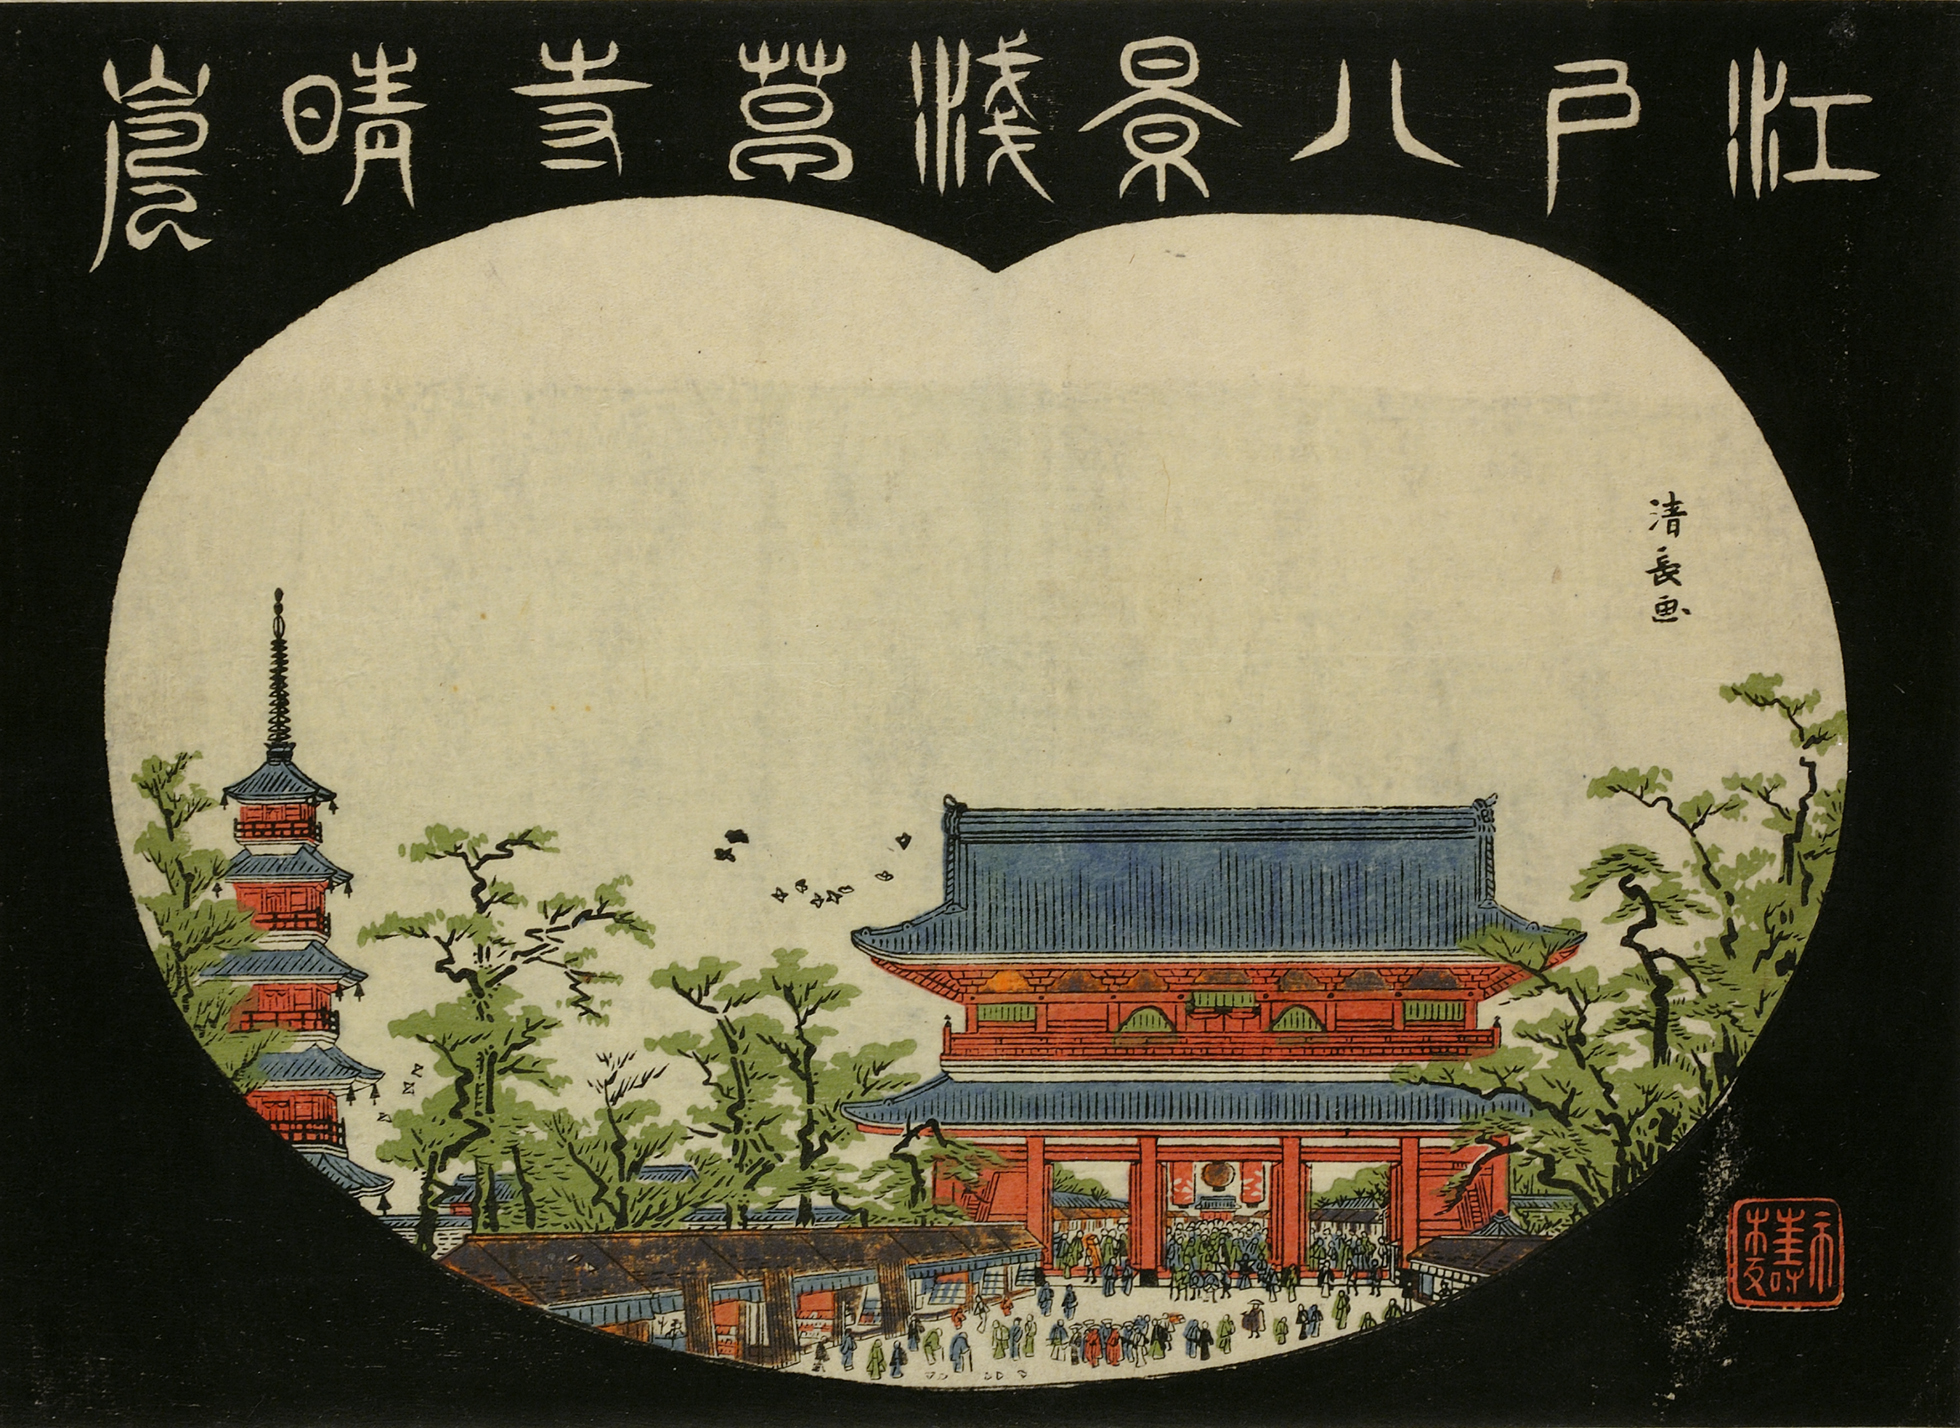 A colour woodblock print showing Akasuka Temple in Japan. The building is seen within a heart-shaped cutout, and people flock through its gates